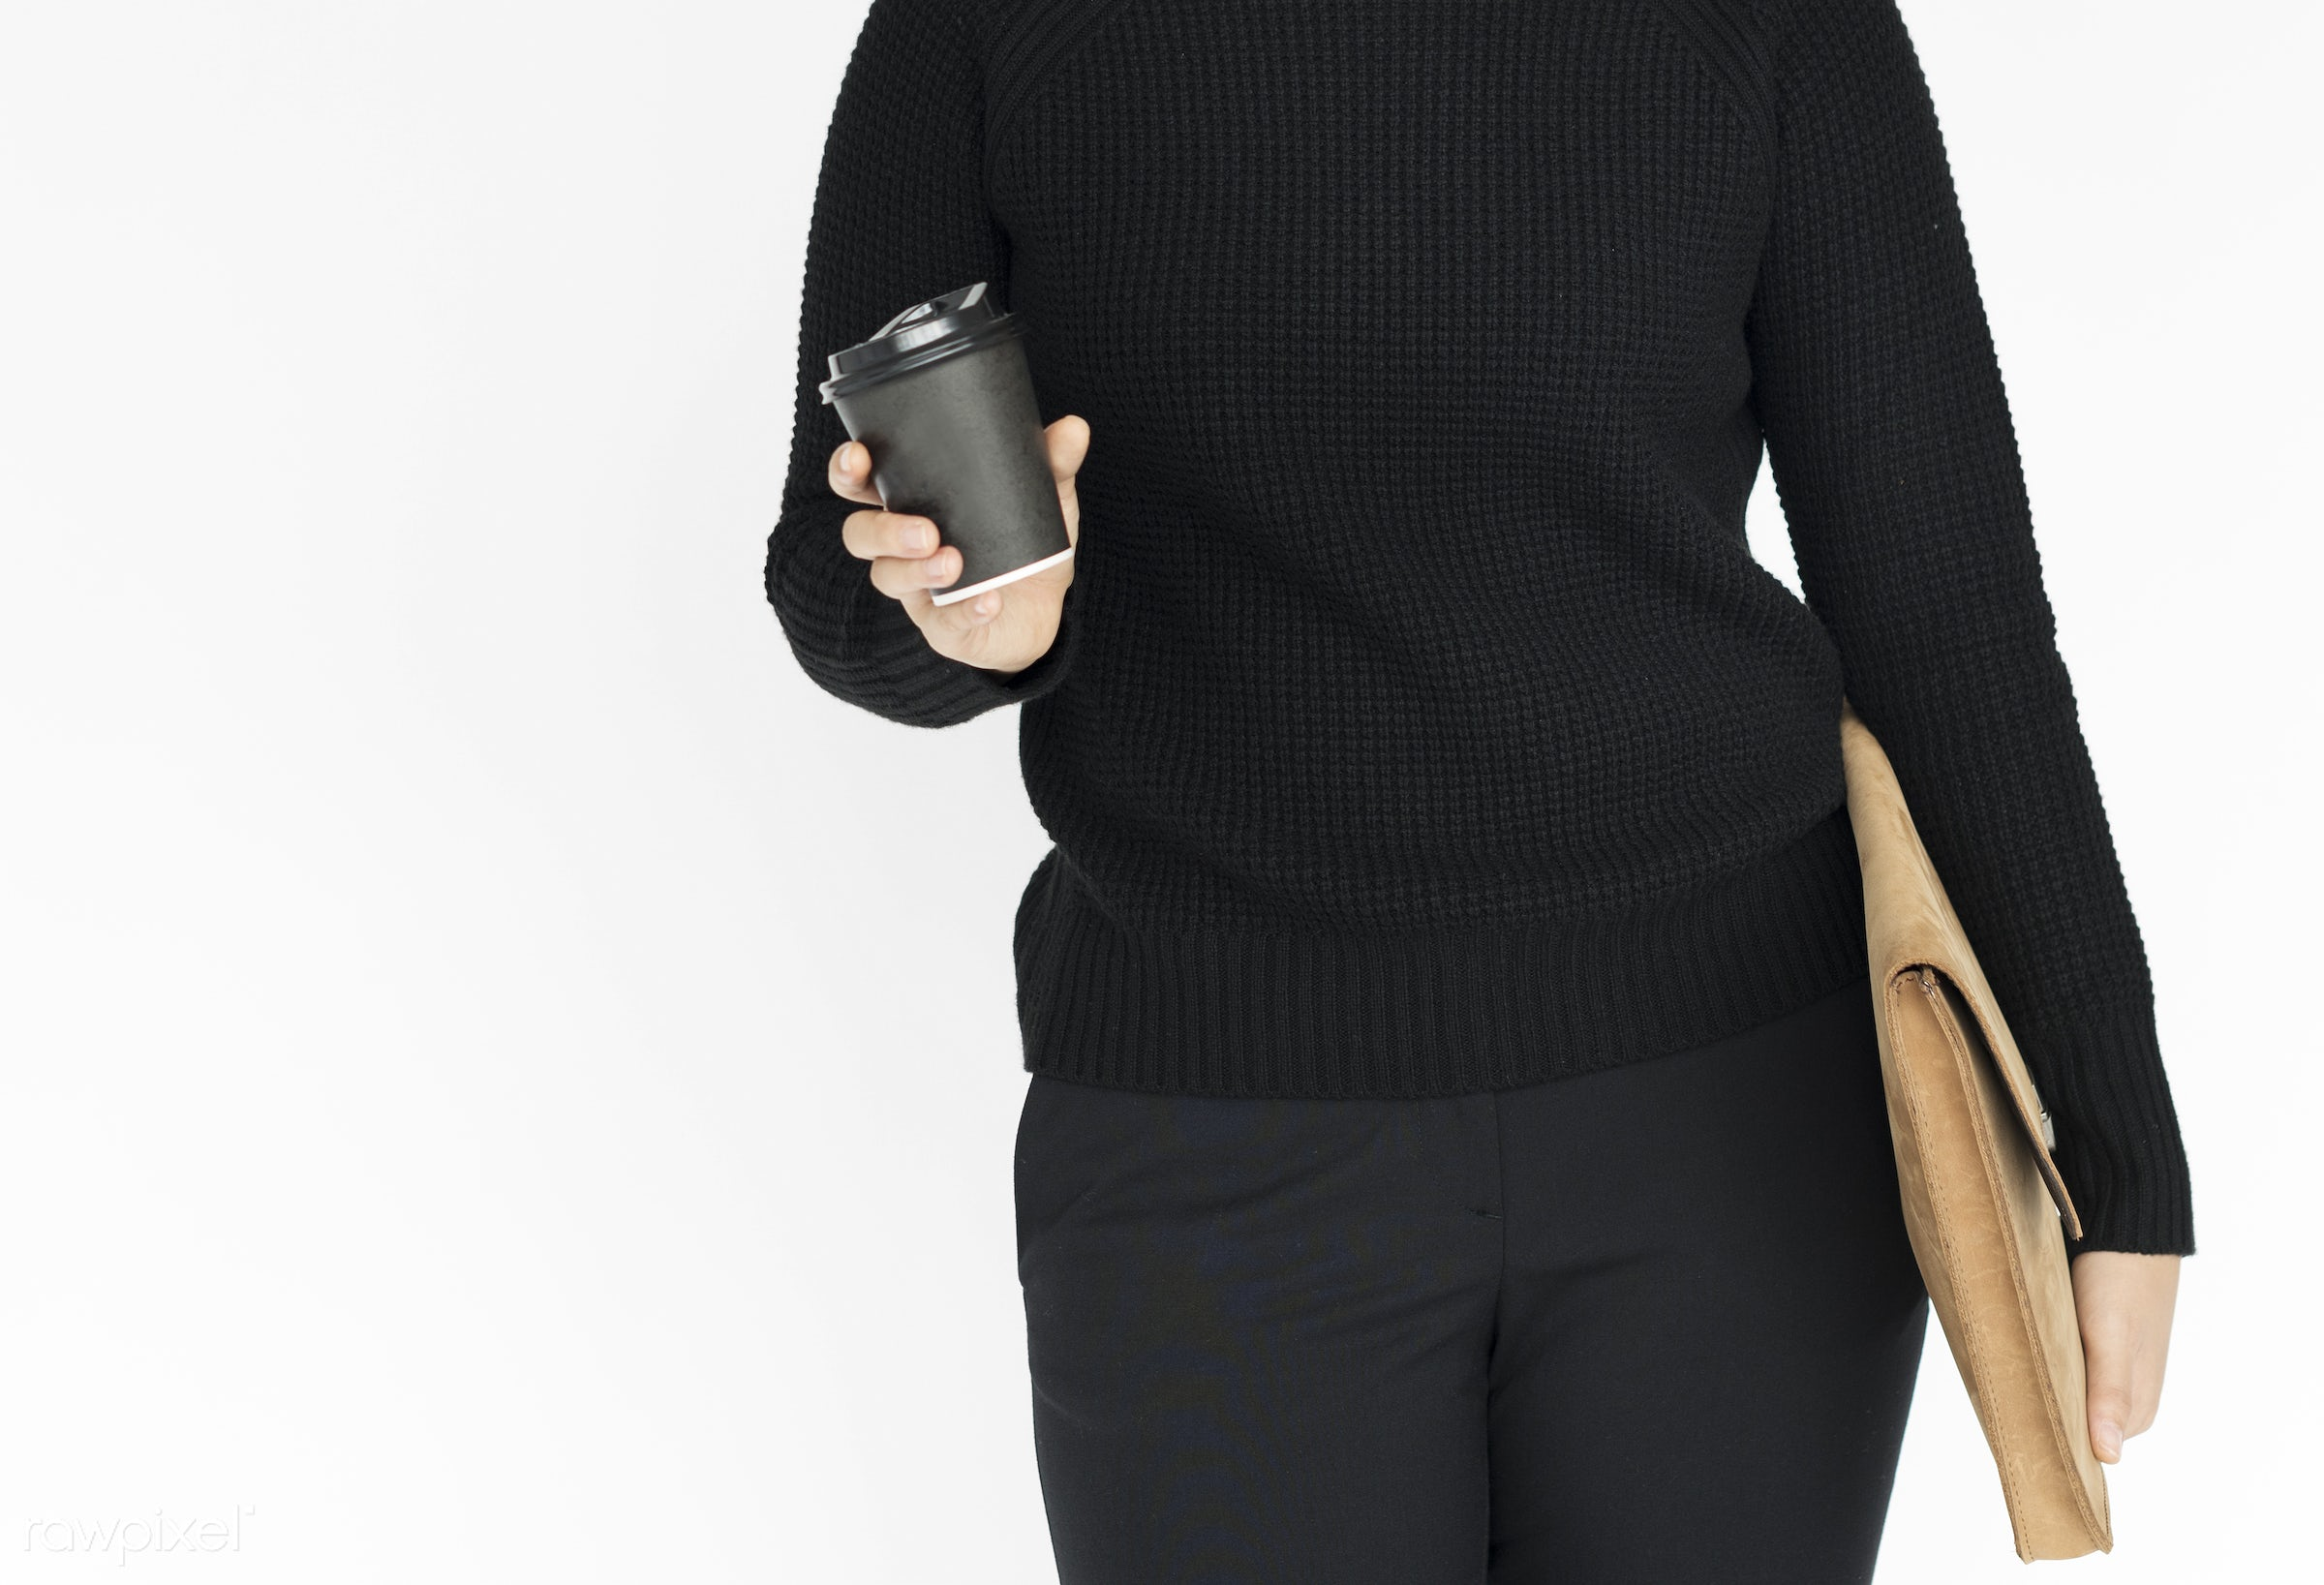 studio, cup, expression, person, holding, people, woman, positive, smile, cheerful, refresh, smiling, isolated, bag, coffee...